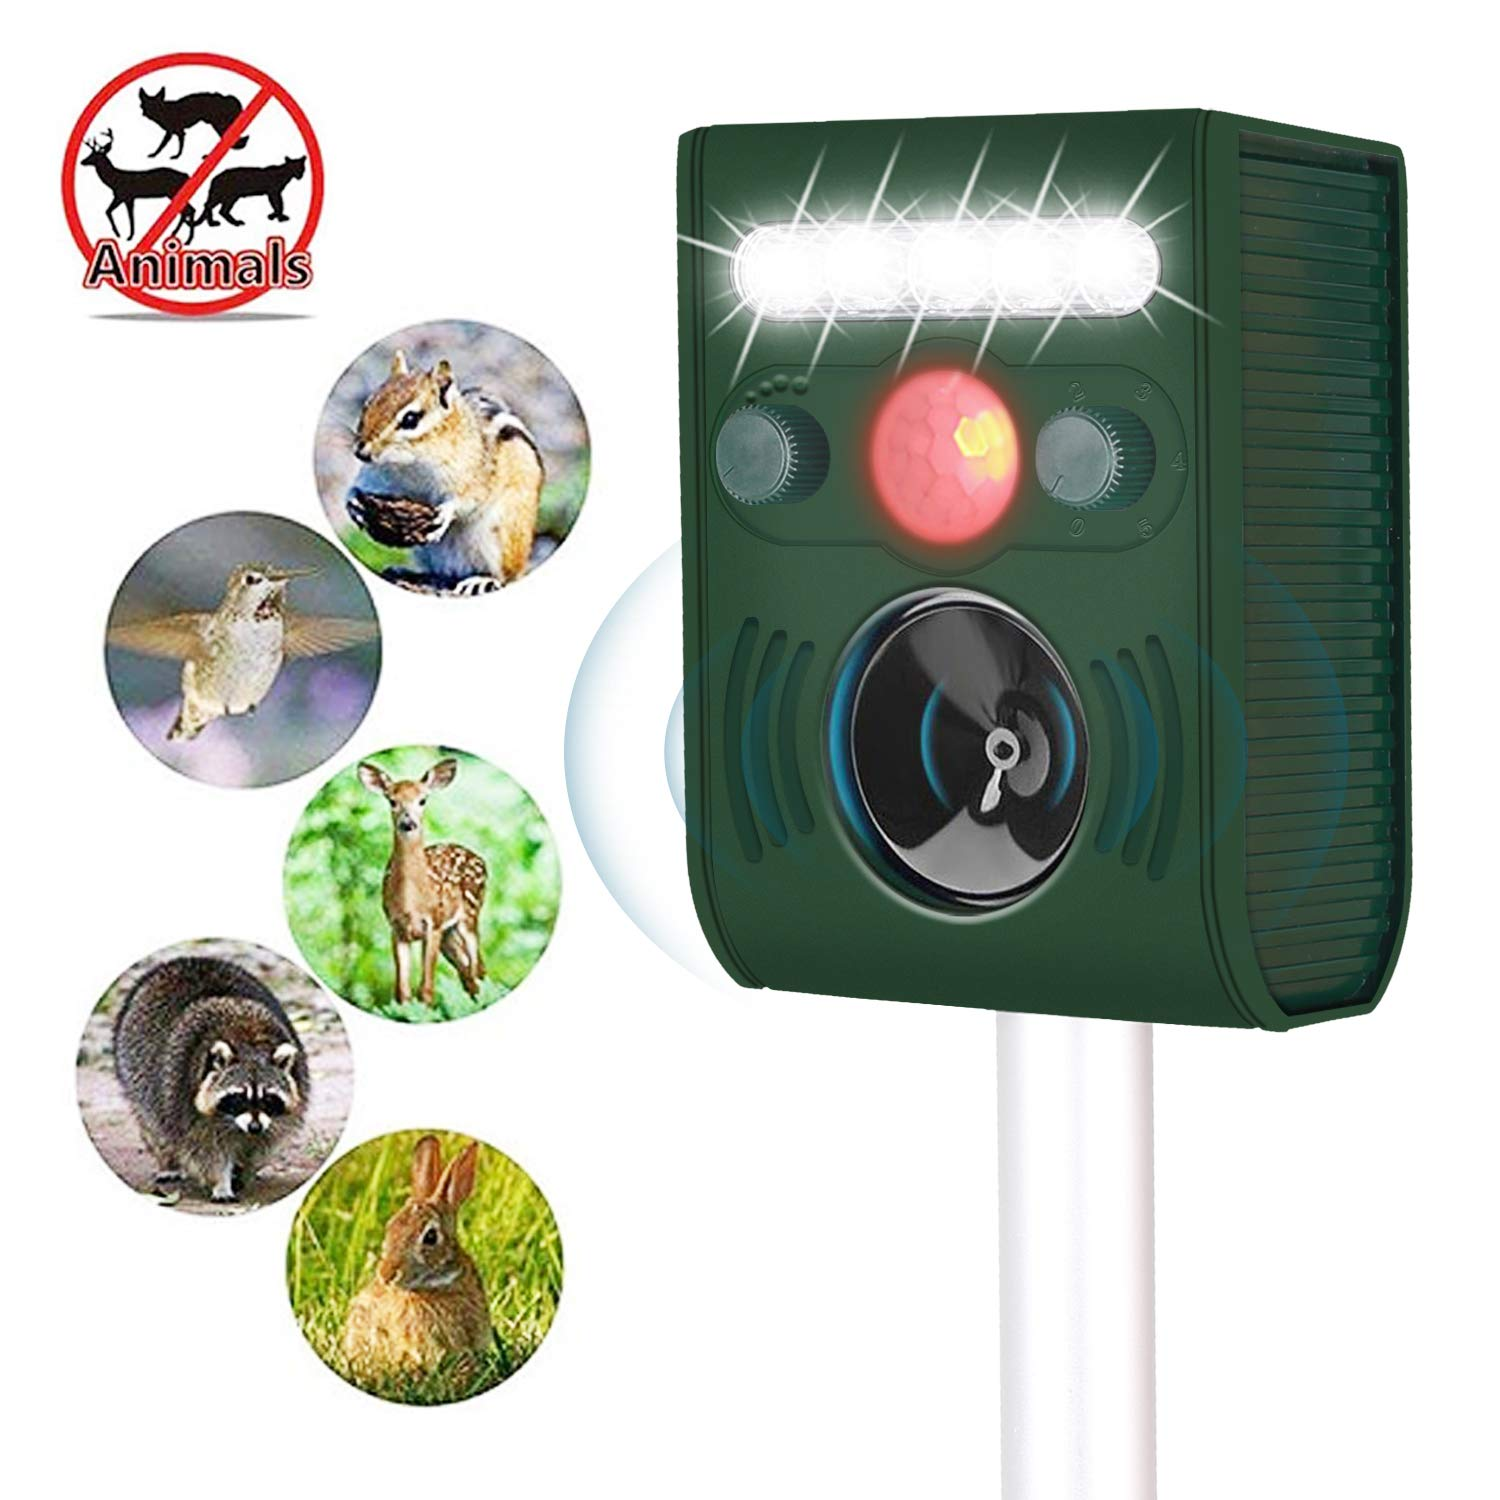 BPerfect Ultrasonic Animal Repeller,Solar Powered Repellent,Activated with Motion,Ultrasonic and Flashing LED Lights Outdoor Repellent for Dogs,Cats,Foxes,Mice,Birds,Skunks,Etc. …Pack of 2